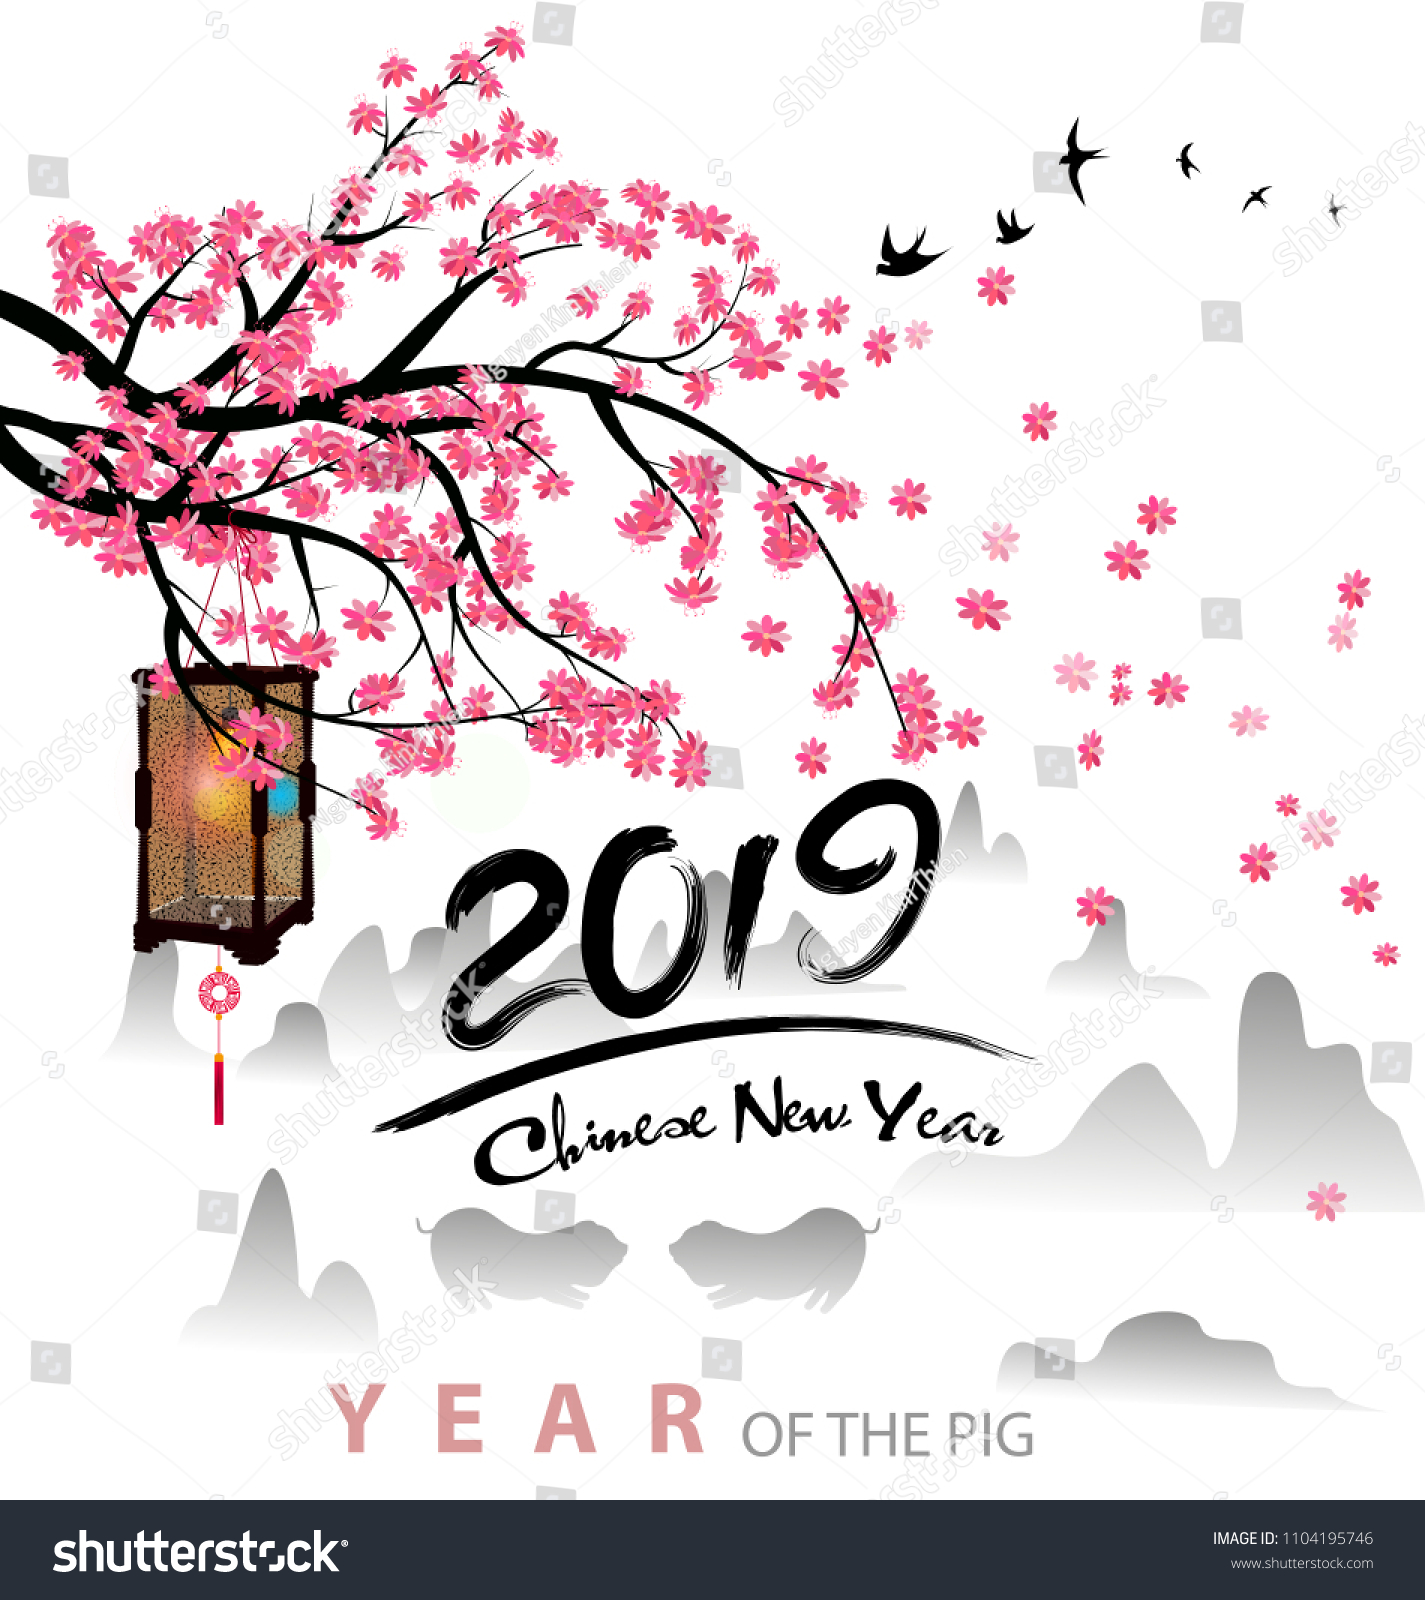 Happy New Year 2019 Chinese New Year Year Of The